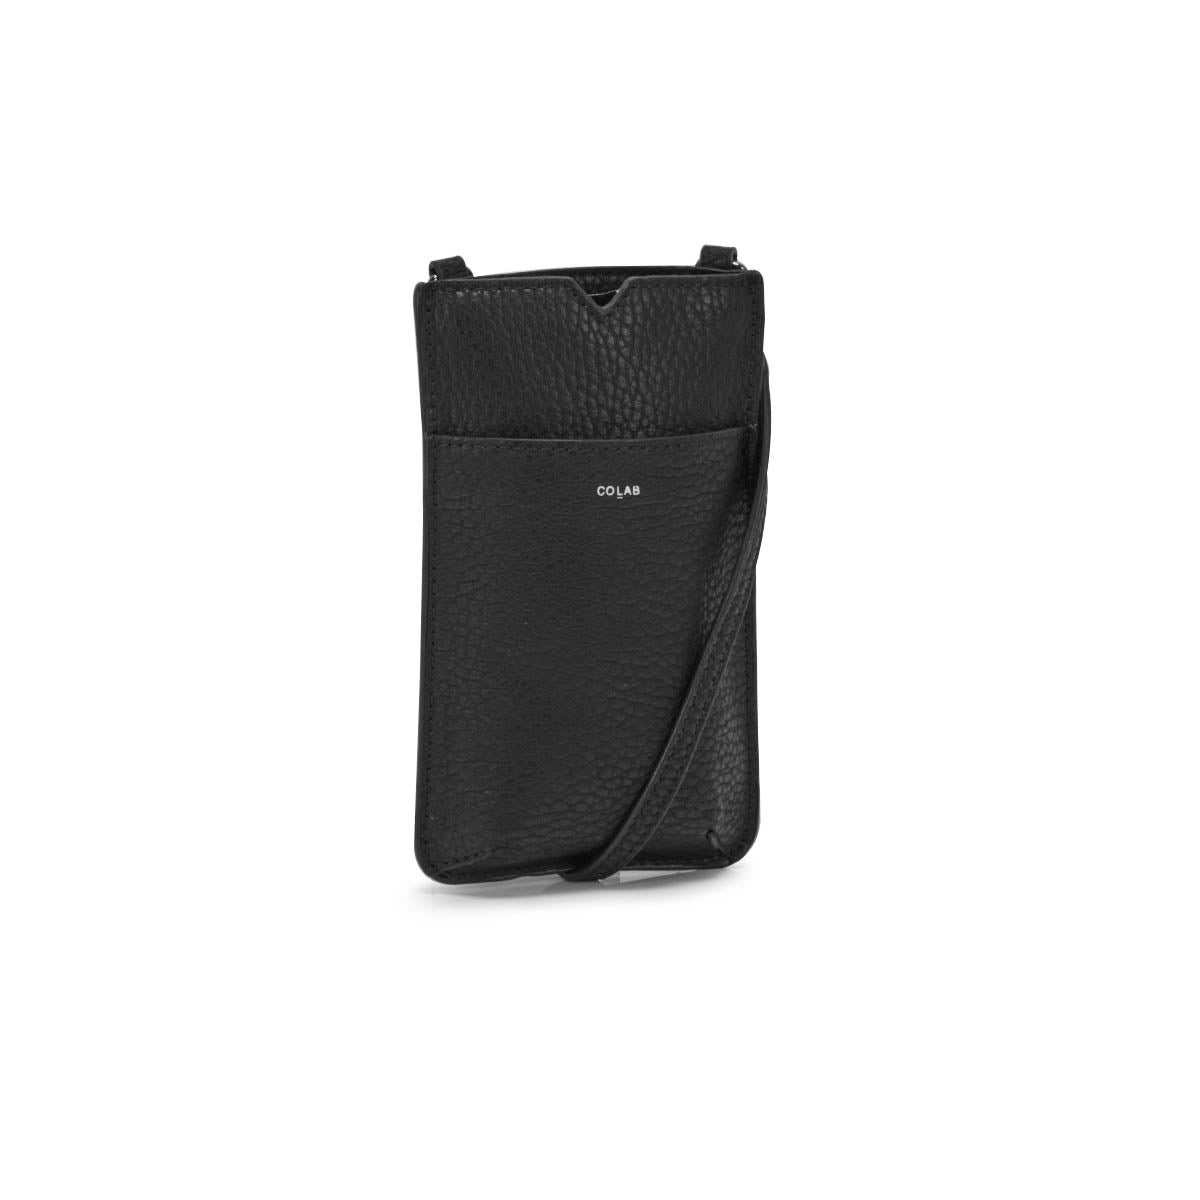 Lds black cell-phone holder crossbody